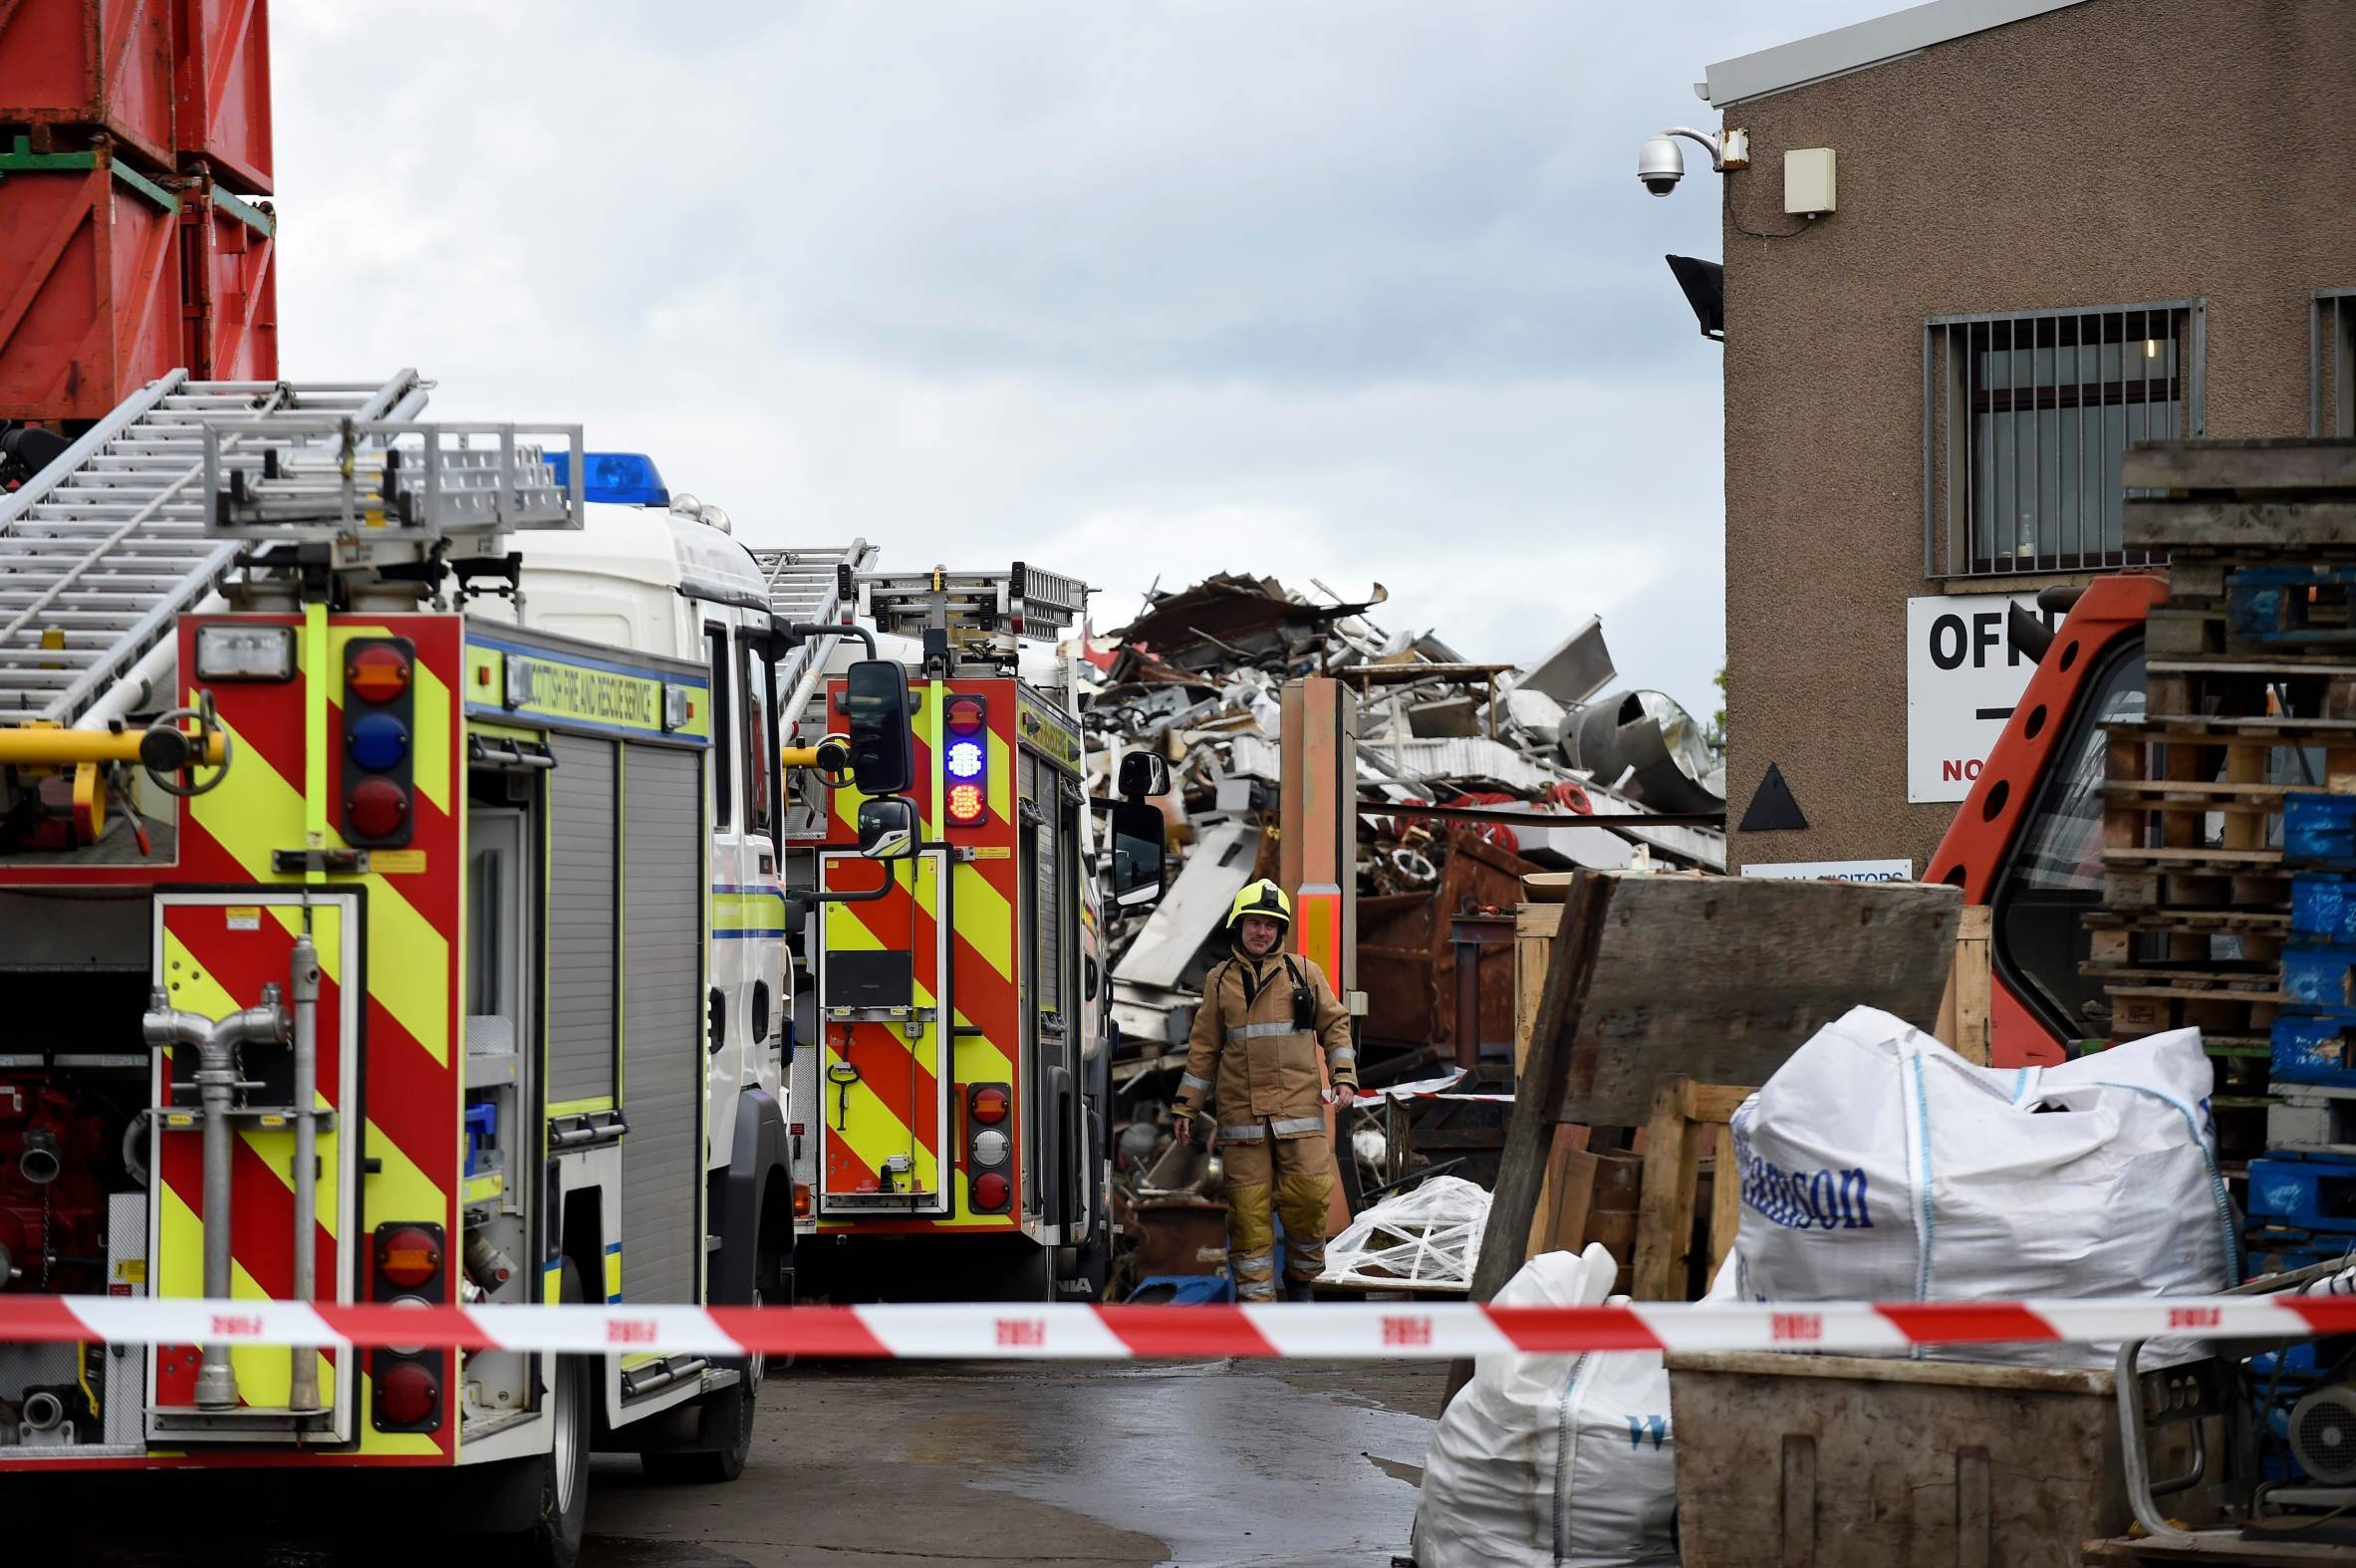 Firefighters at the scene of the fire in Peterhead.